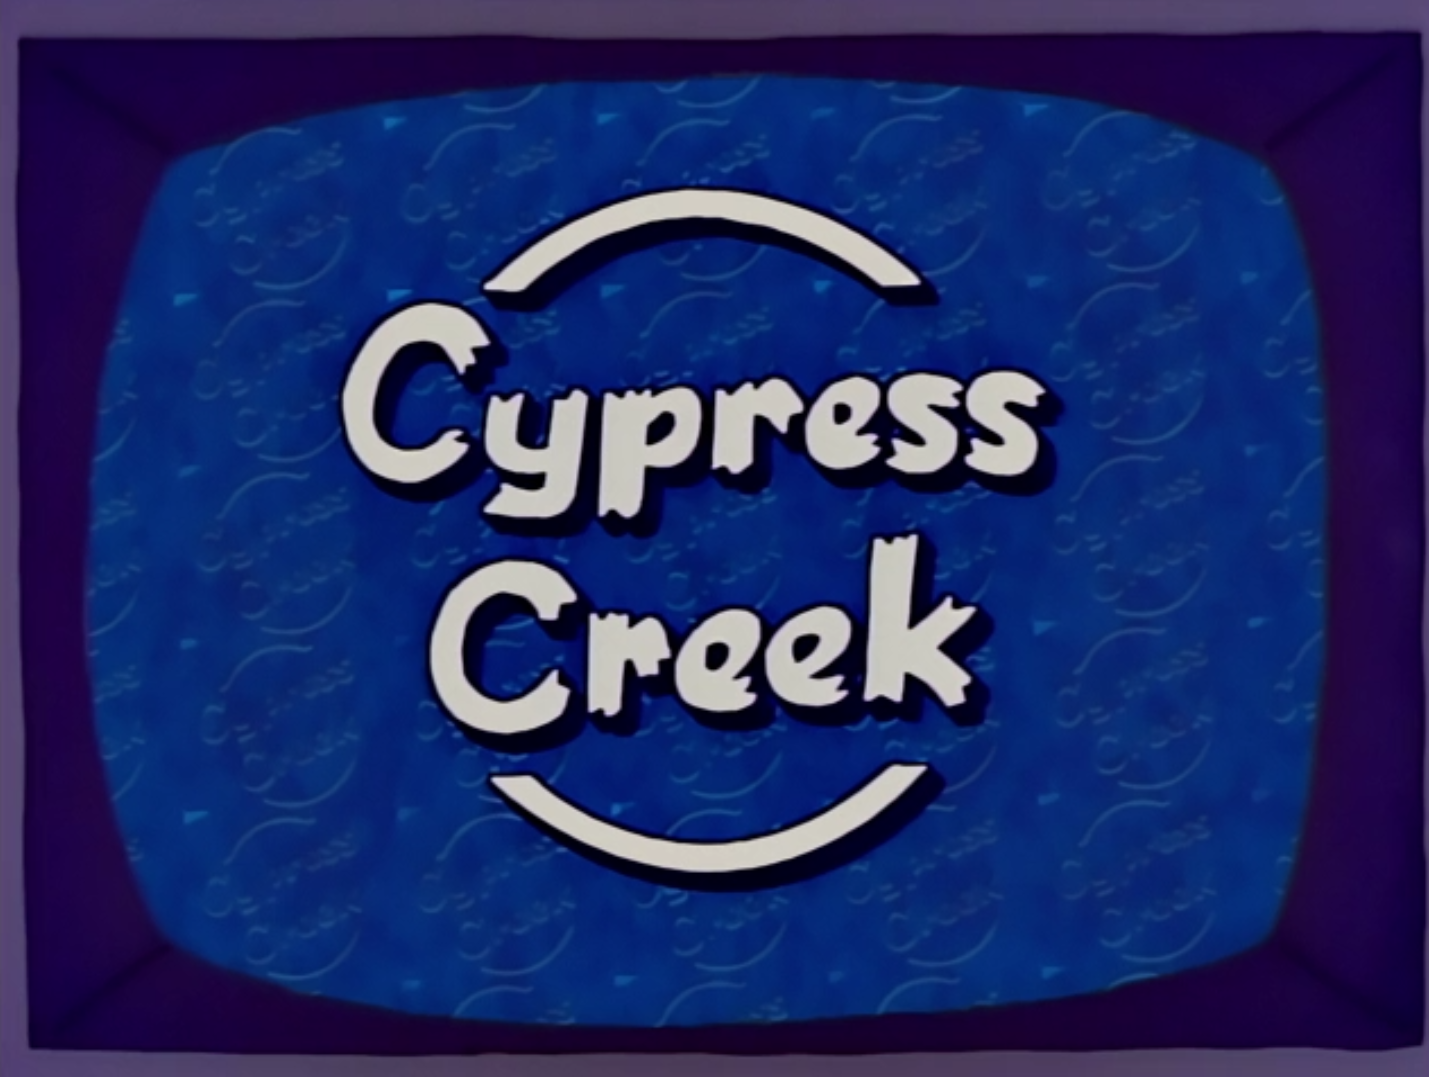 Cypress Creek A Tale of One City.png